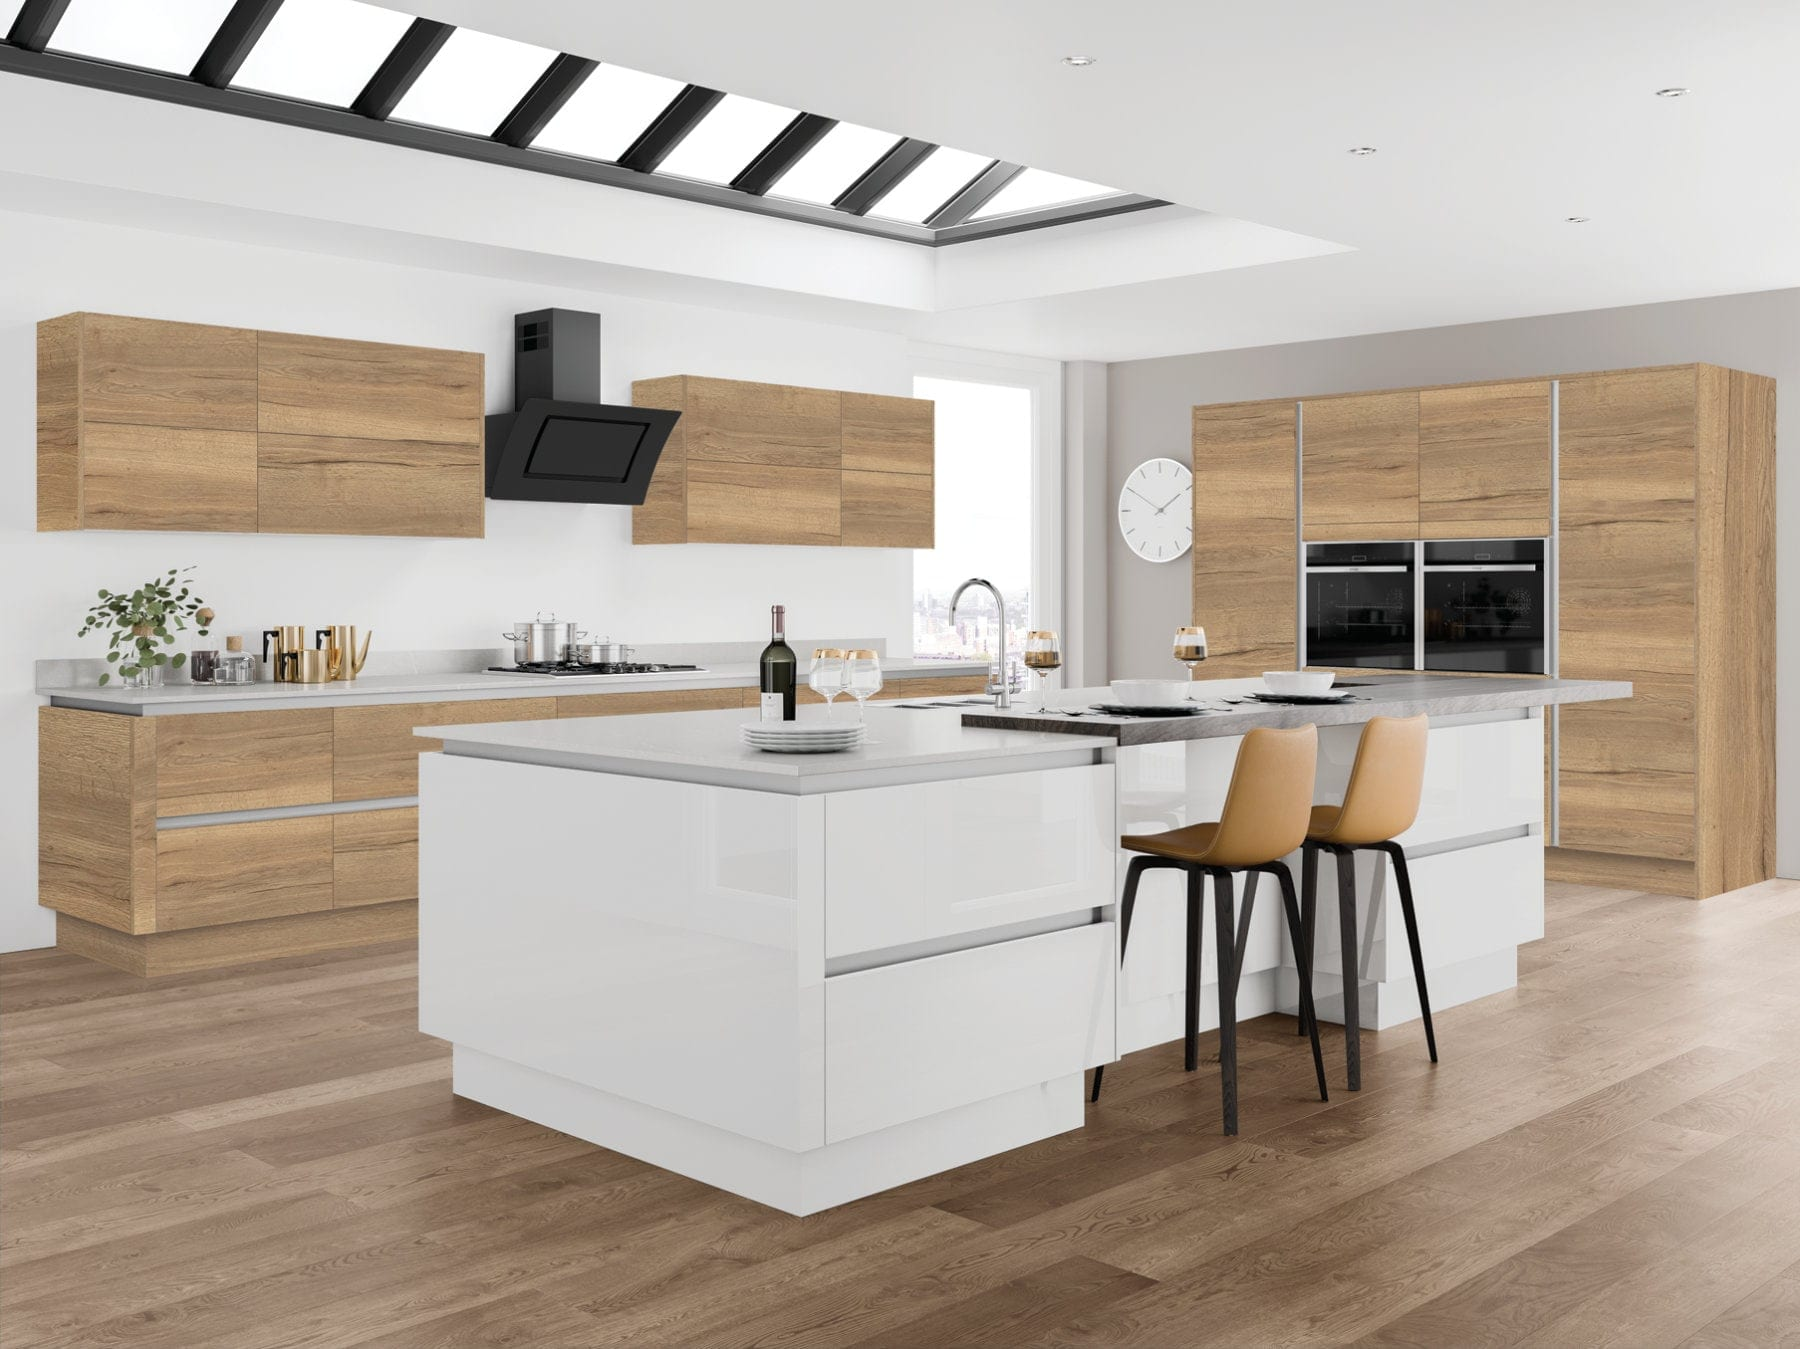 Jjo Moderna Halifax Oak With Gloss White Open Plan Kitchen With Island | Right Choice Kitchens, South Wales